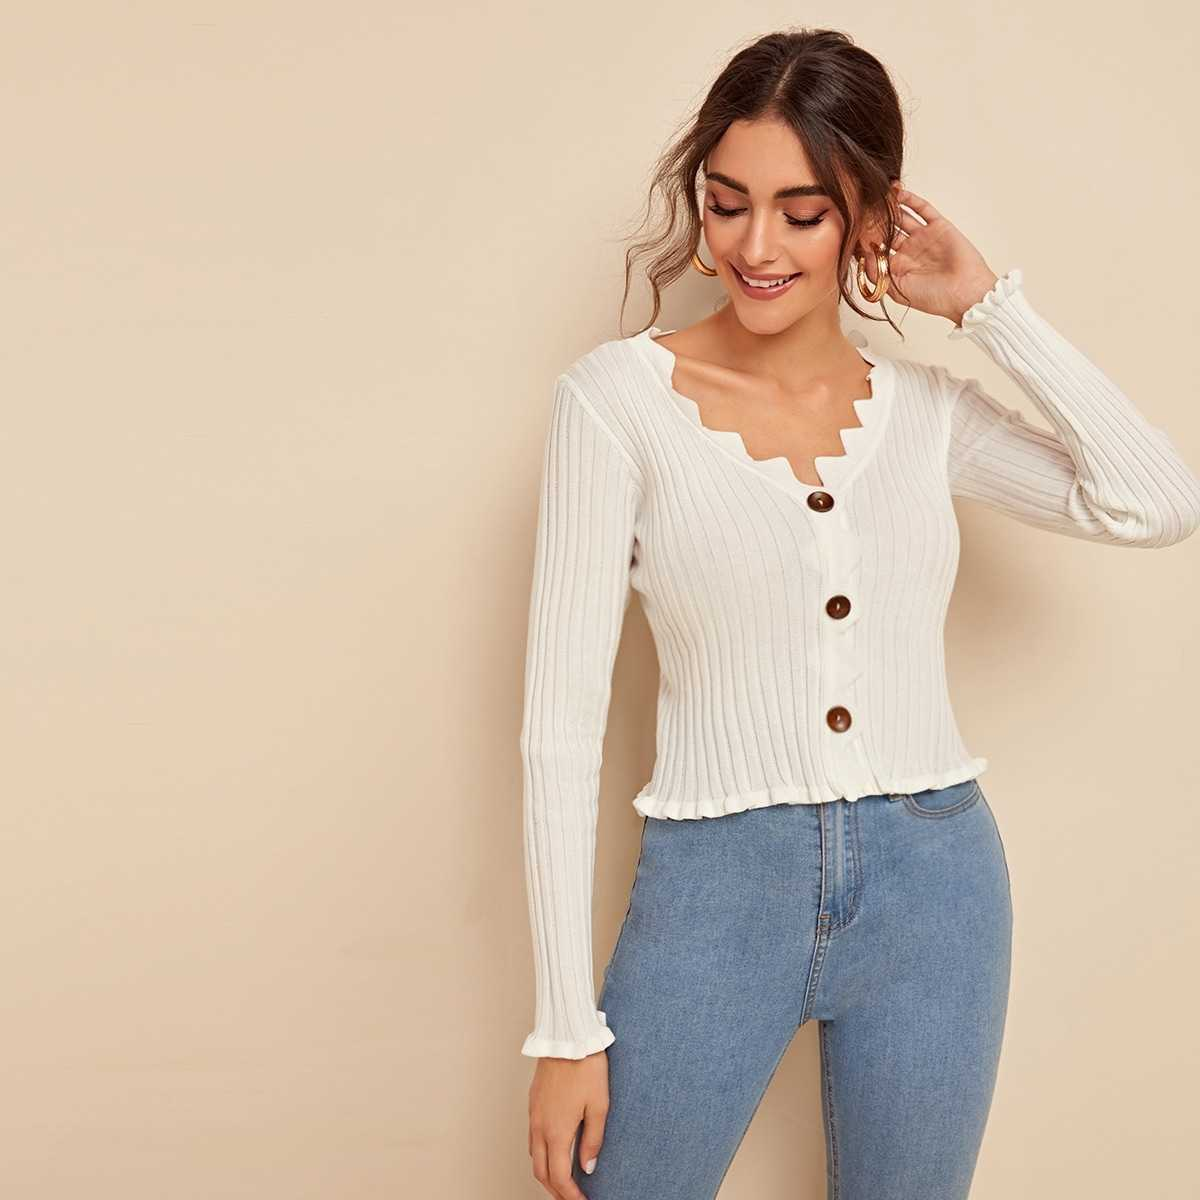 Button Front Frill Trim Rib-knit Sweater in White by ROMWE on GOOFASH